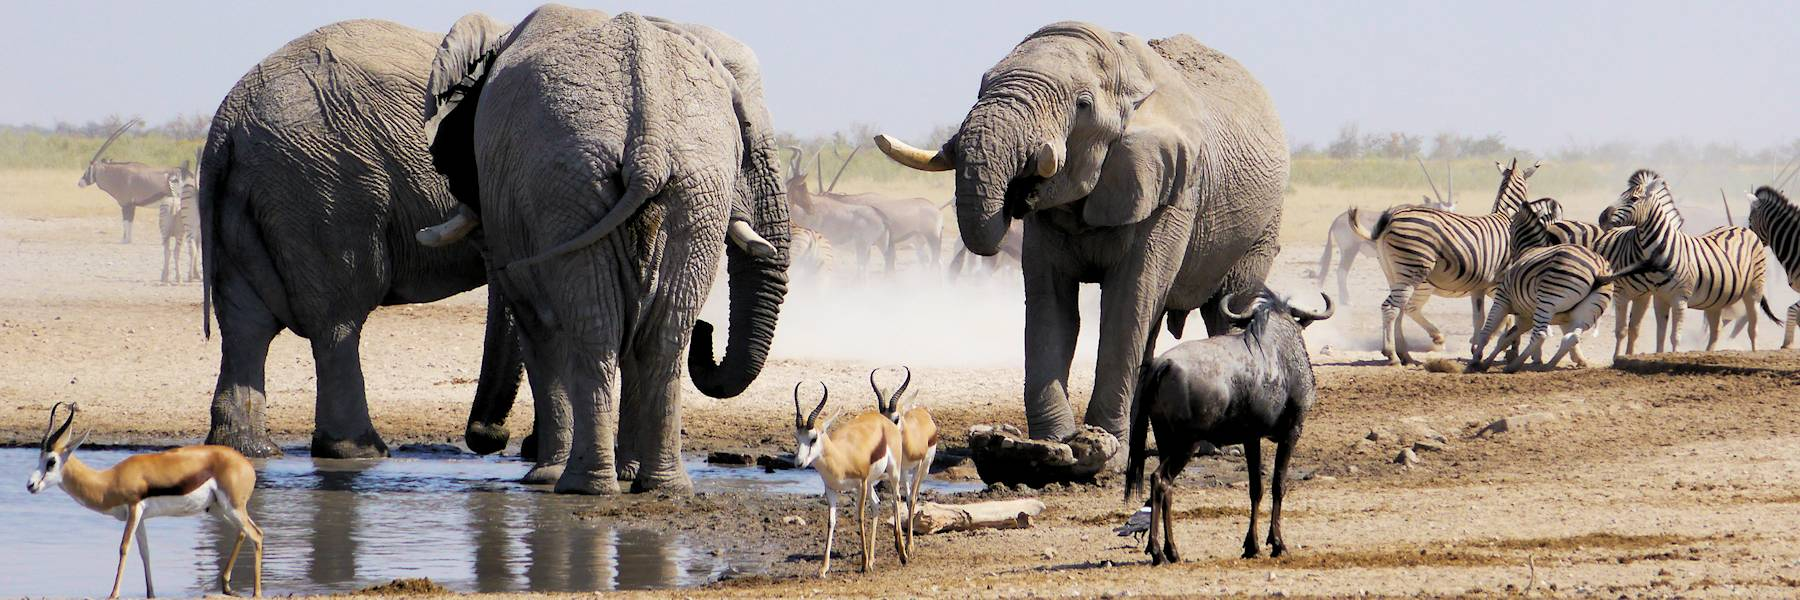 safari dans le parc d'etosha en namibie - obervation d'elephants au point d'eau